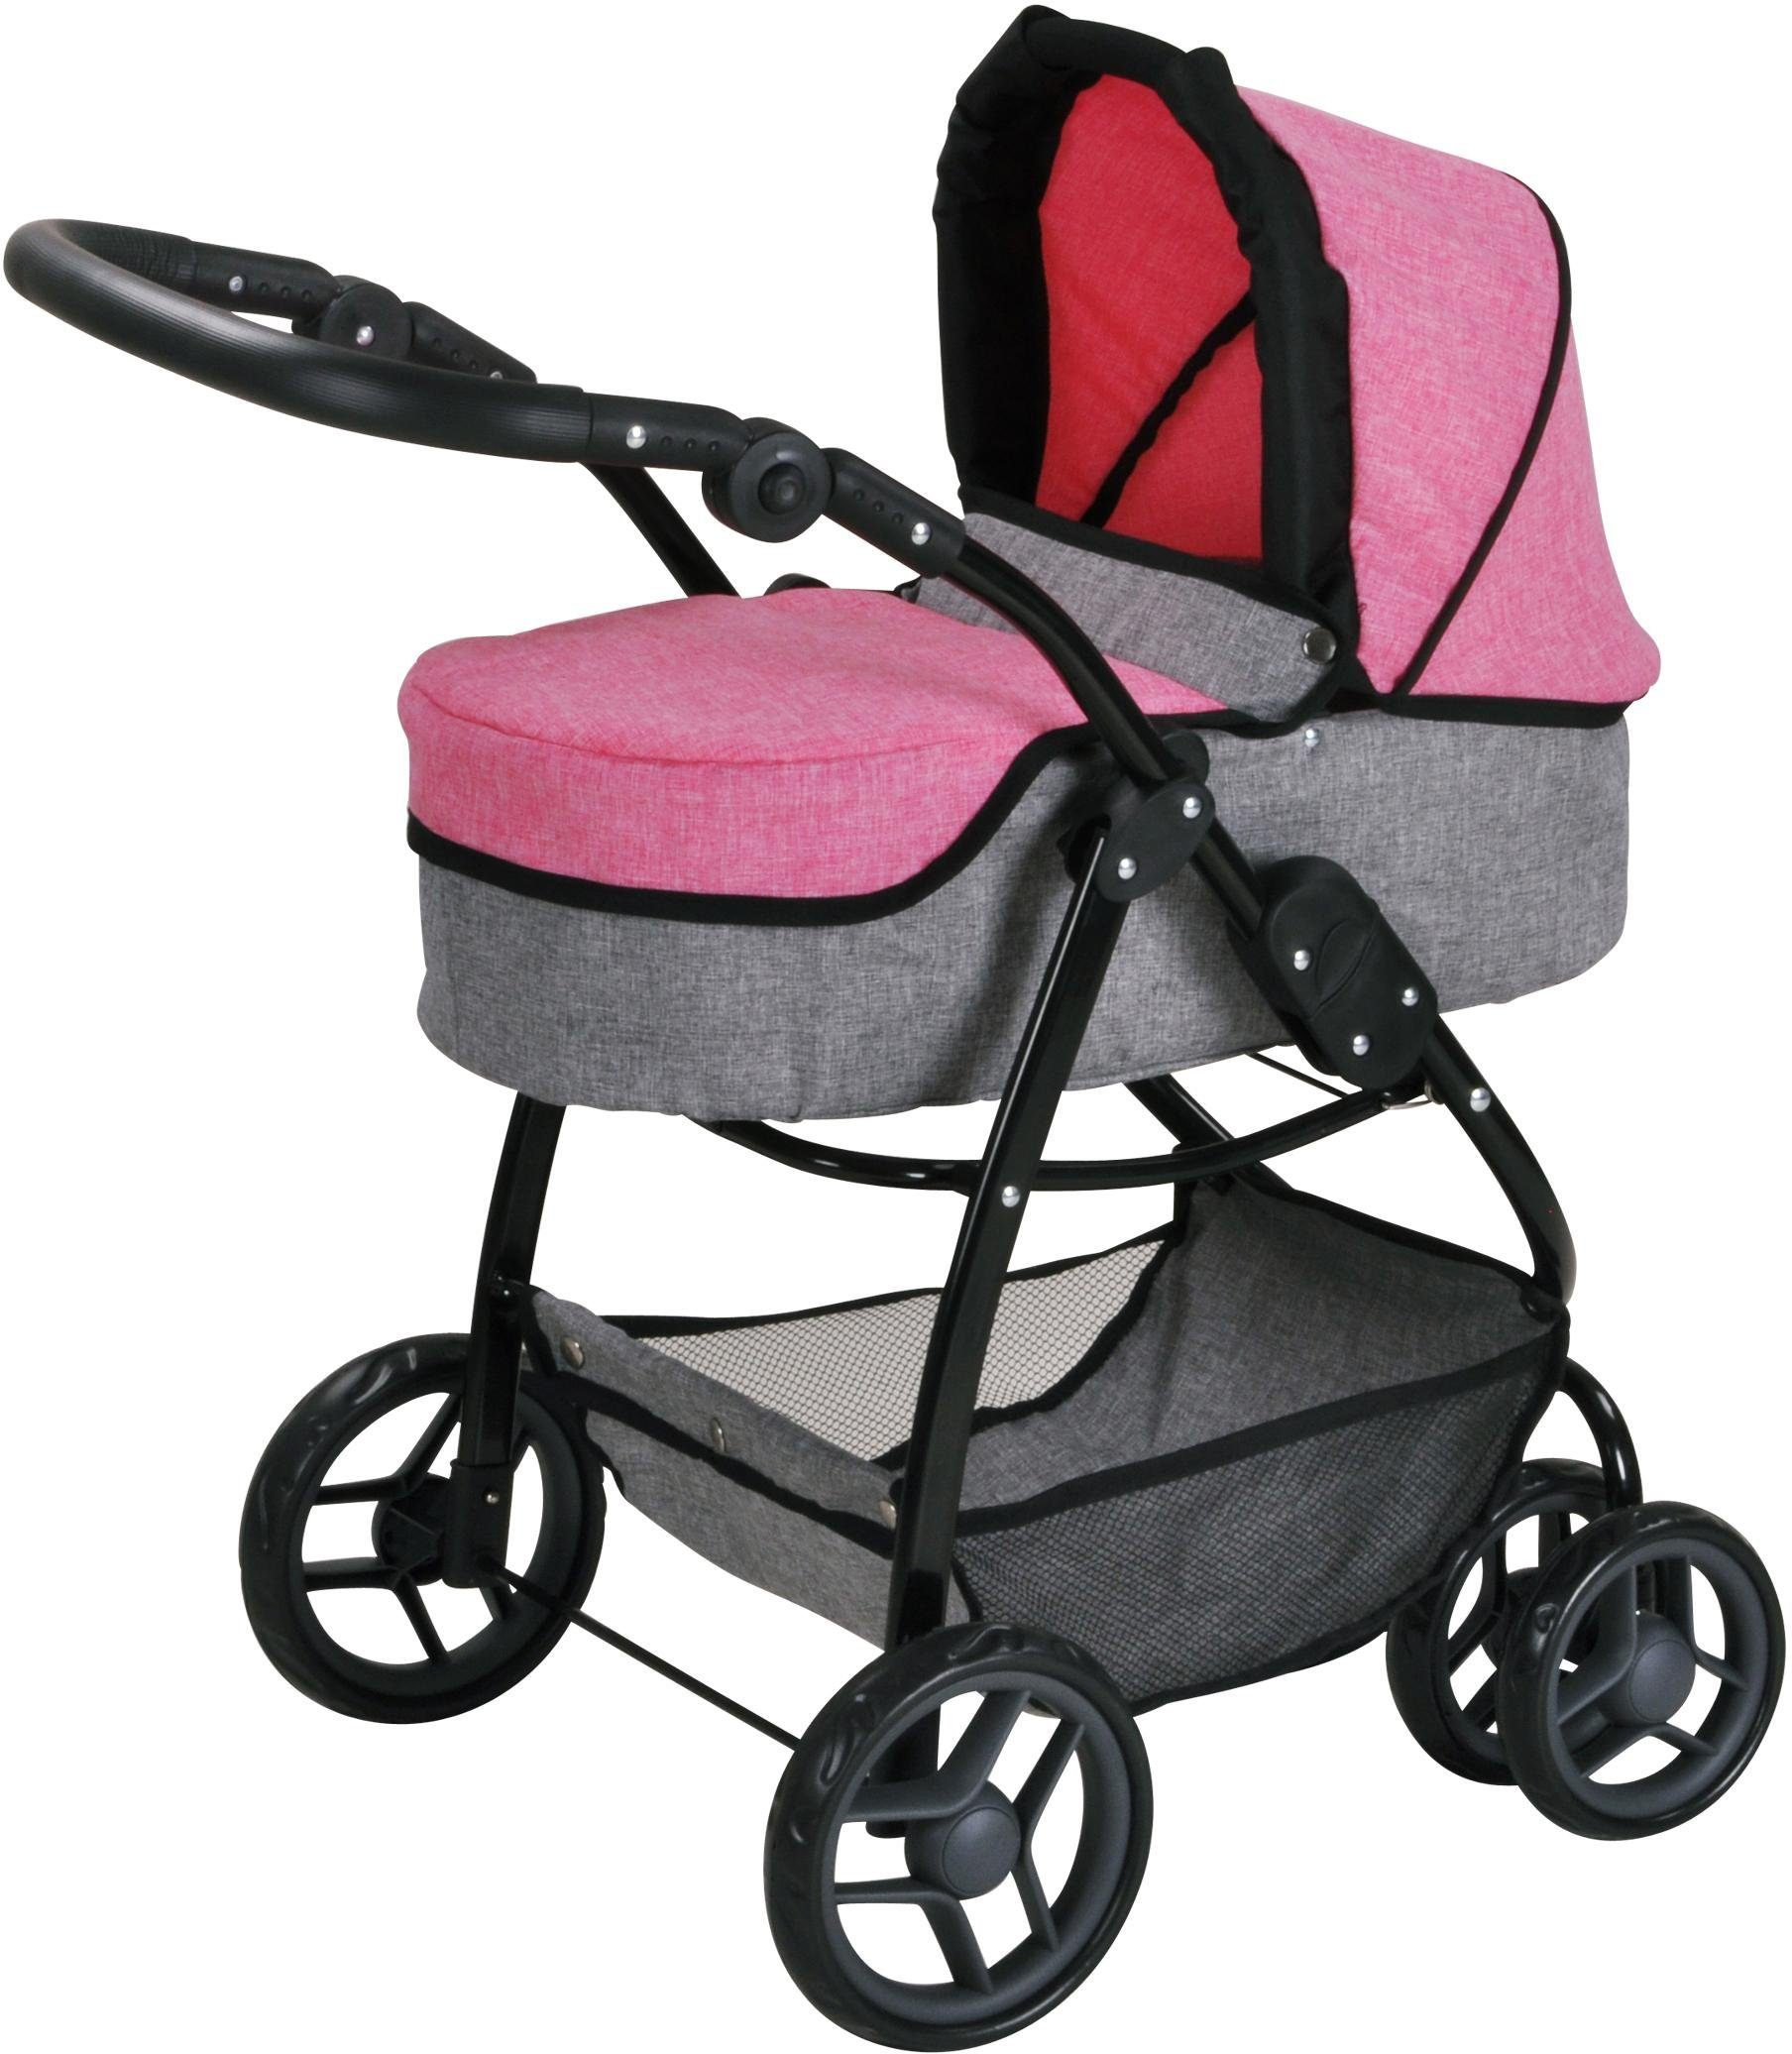 knorr toys Puppenwagen, 2-in-1, »Coco - jeans pink«